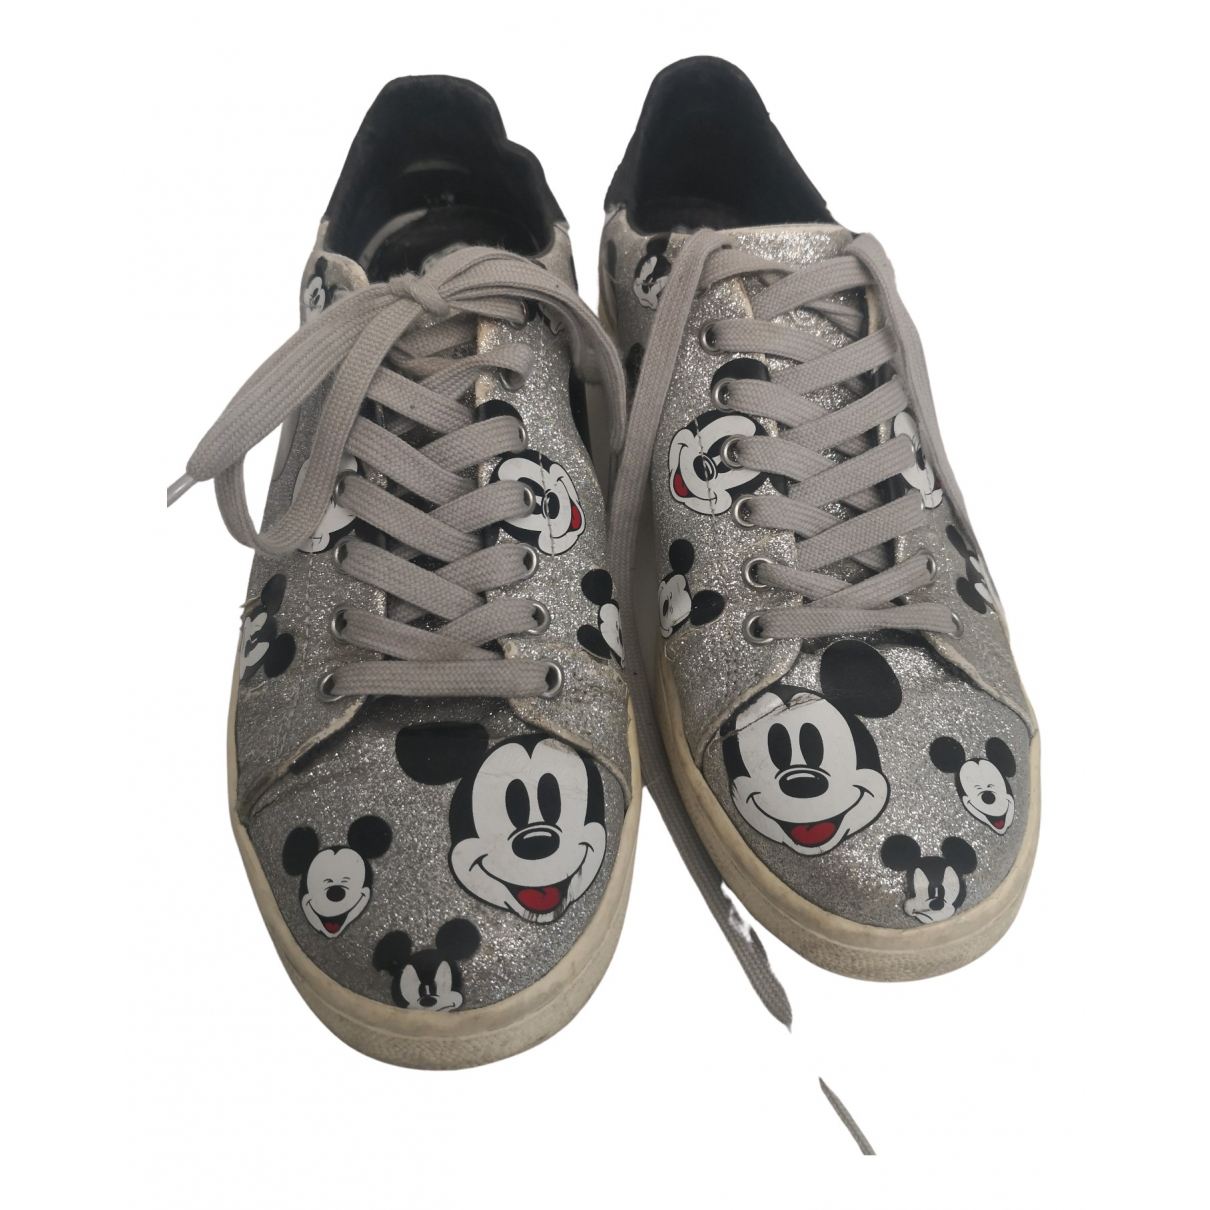 Moa Master Of Arts N Silver Glitter Trainers for Women 38 IT